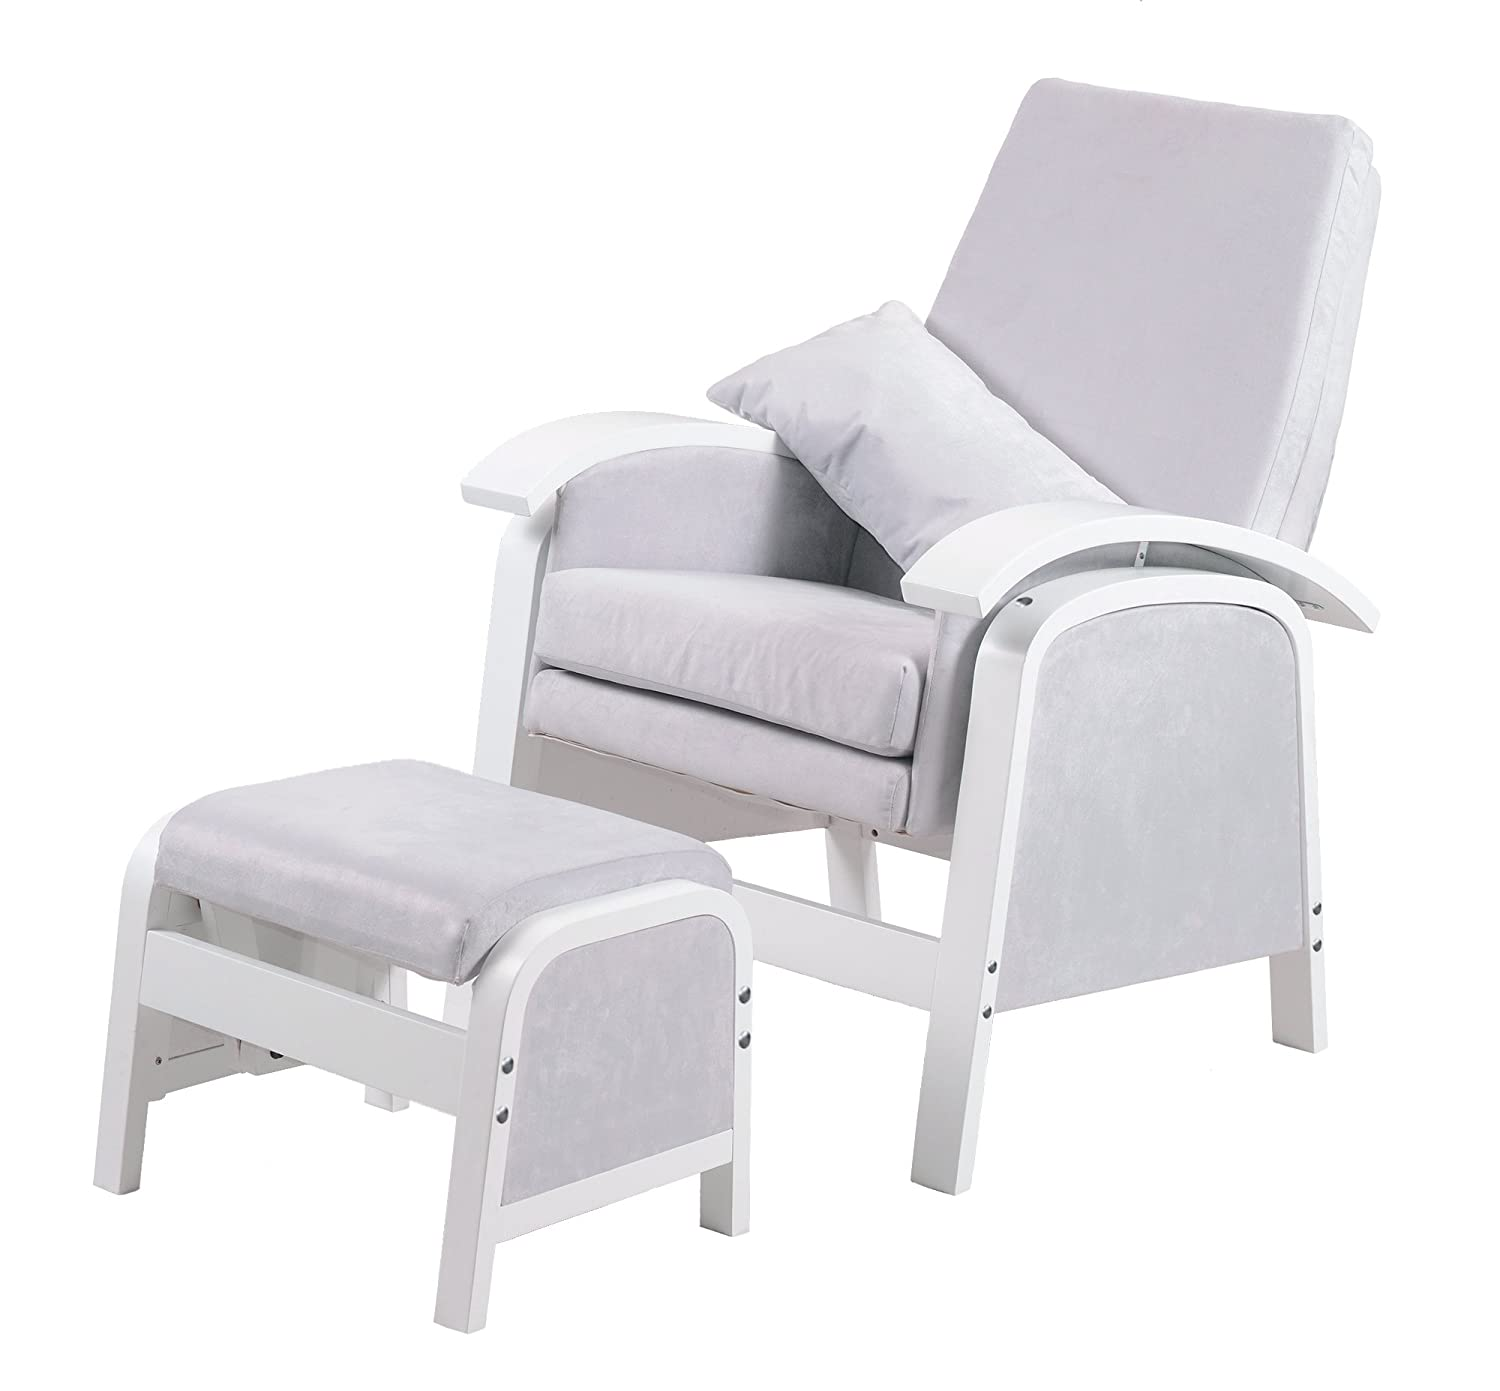 Kub Rosewell Glider And Footstool White Amazon Co Uk Baby